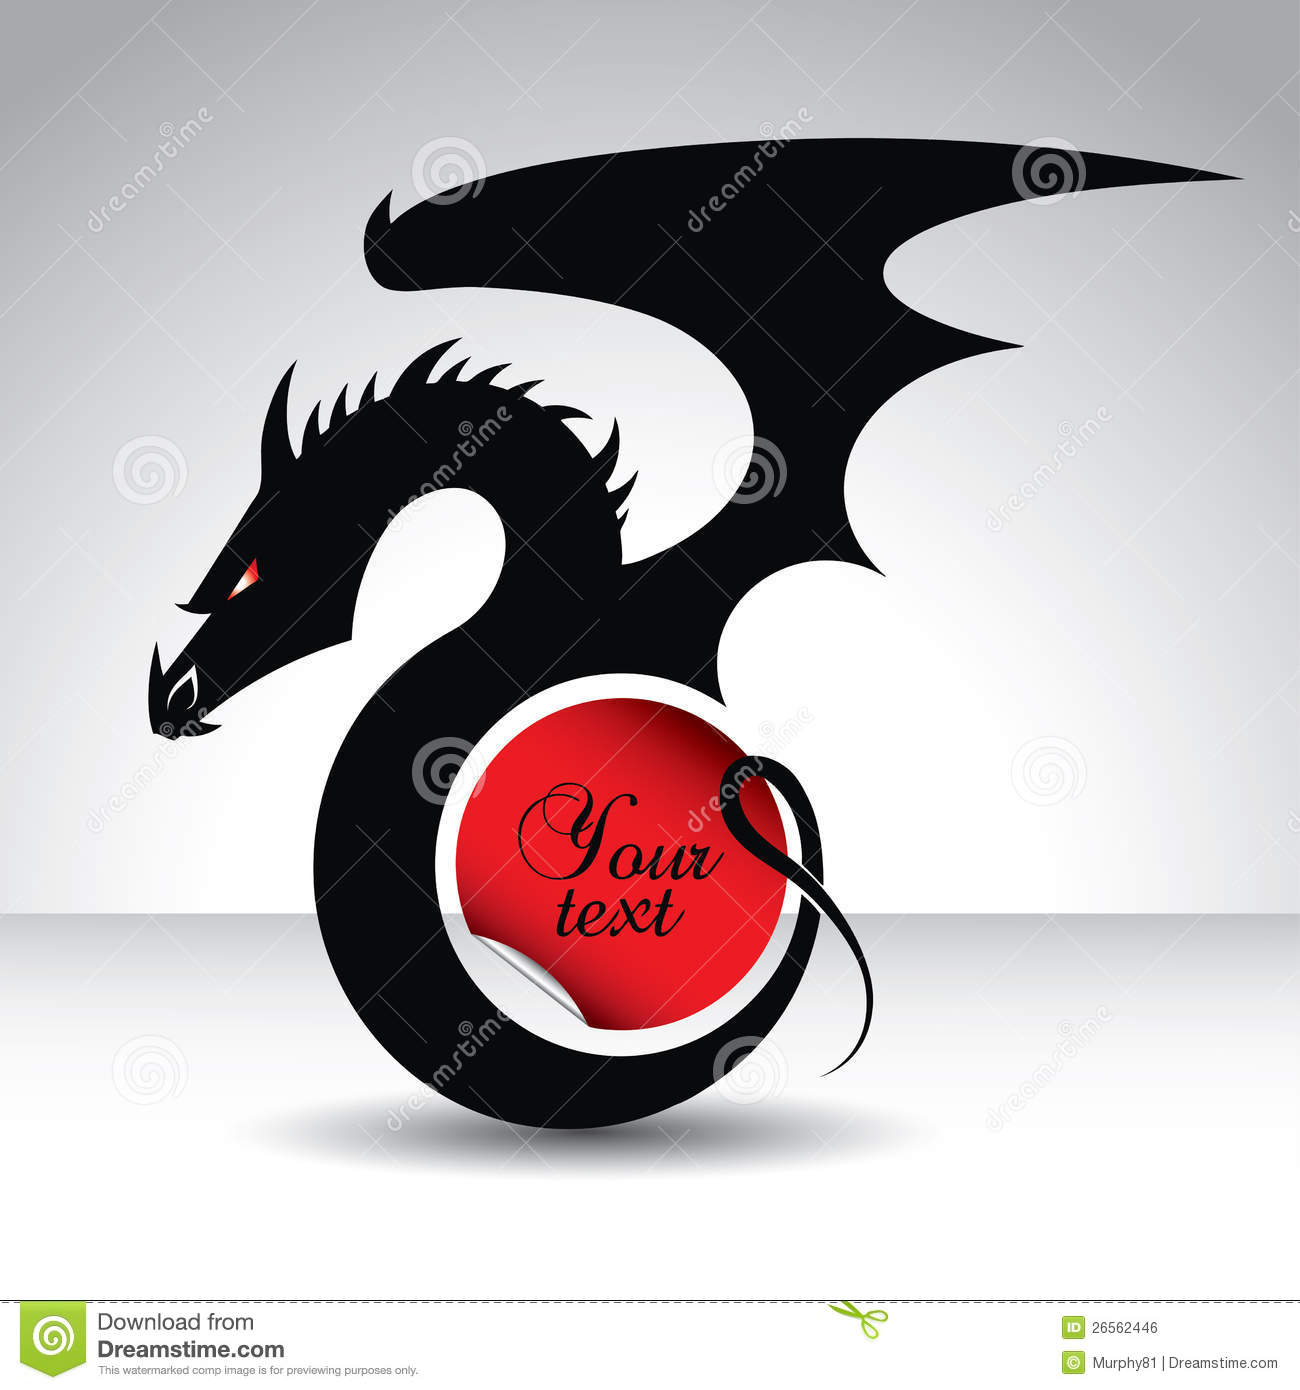 Dragon symbol for 2012 year with text place stock vector dragon symbol for 2012 year with text place biocorpaavc Image collections